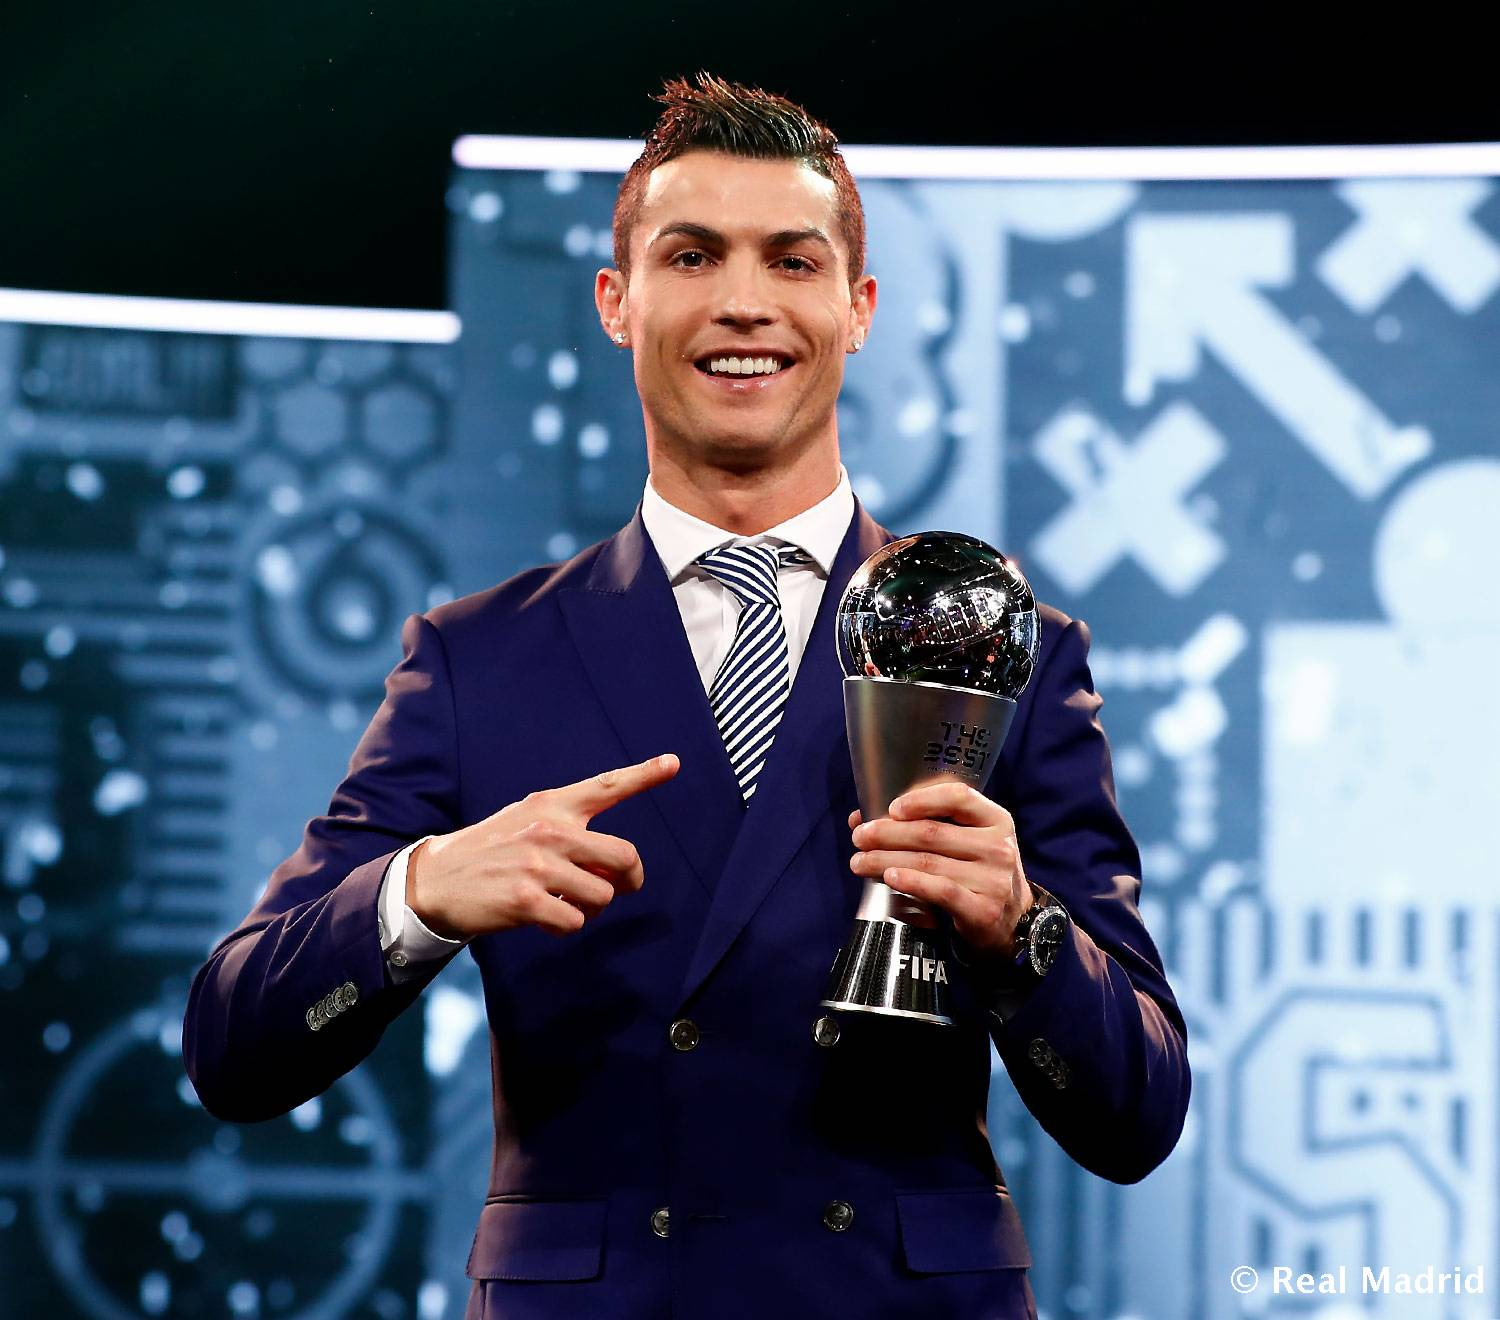 Real Madrid - Cristiano, Premio The Best - 09-01-2017